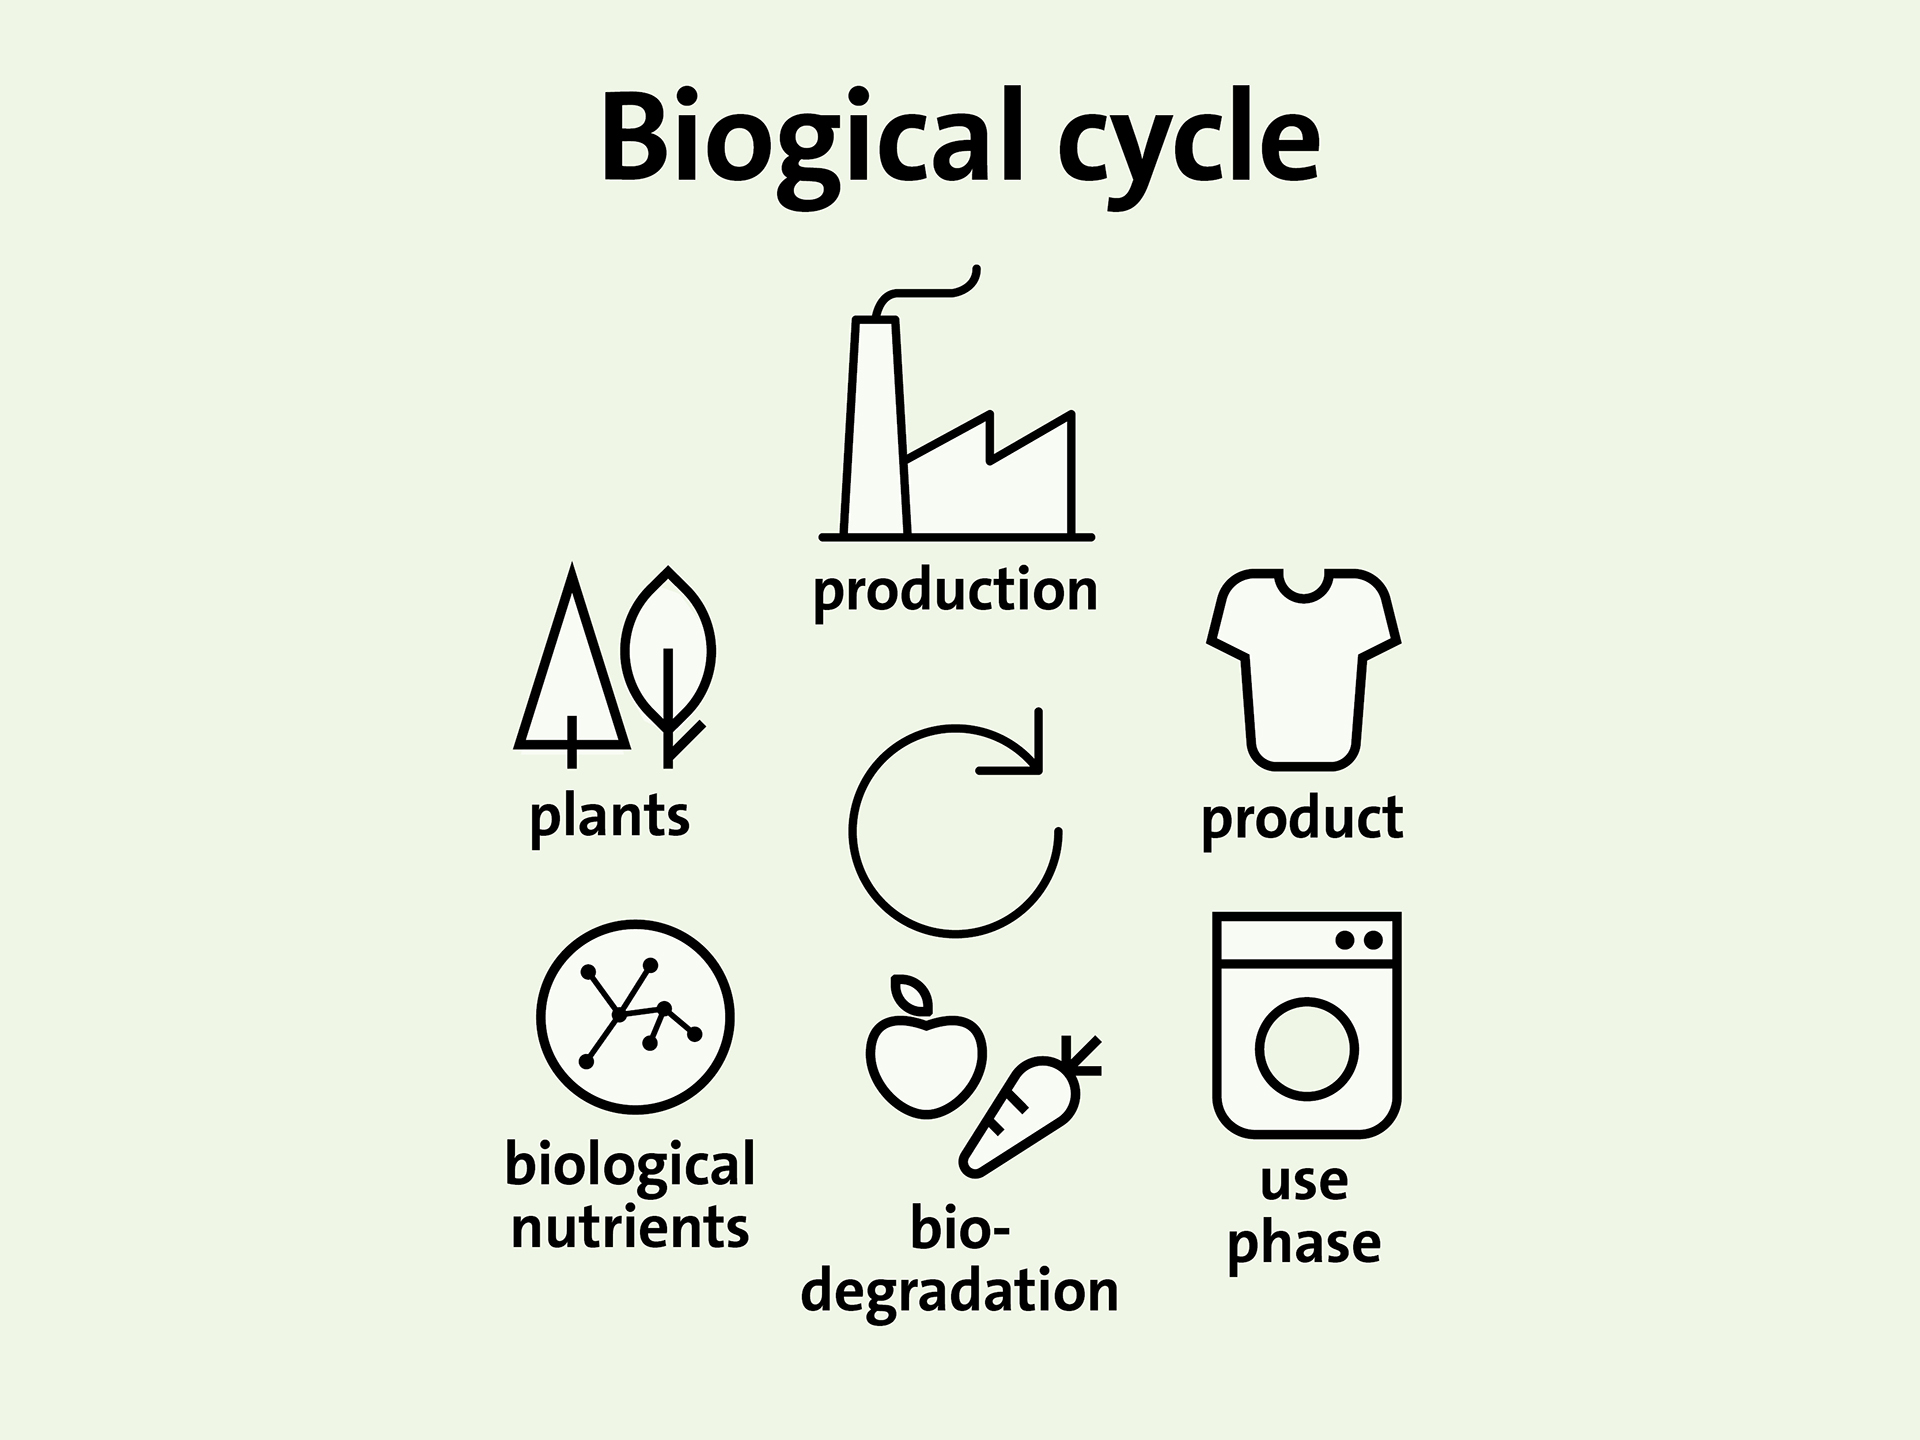 biogical-cycle.jpg